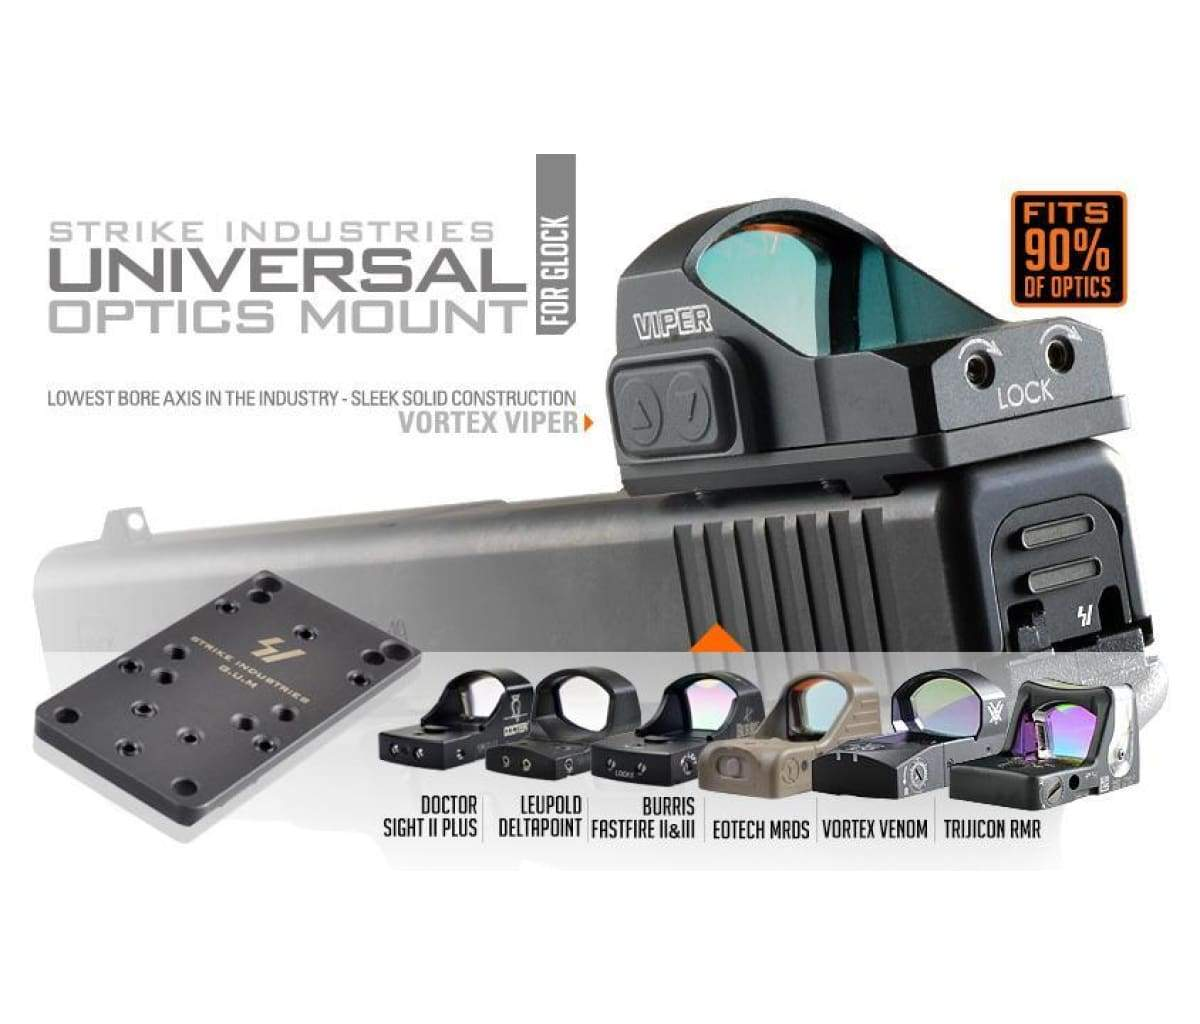 Strike Industries Glock Universal (Optics) Mount - Black - AR15Discounts